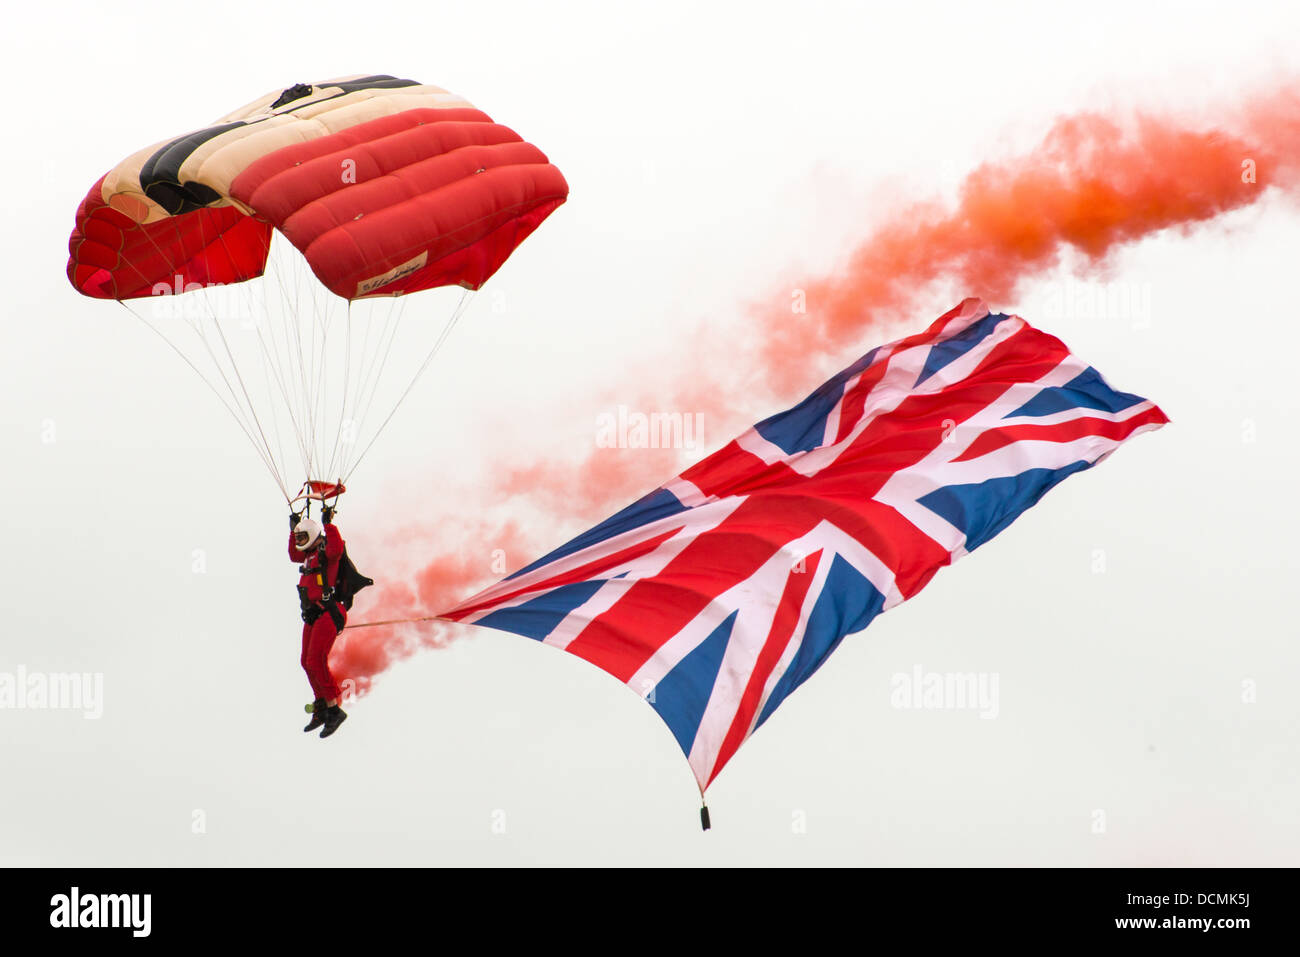 Red devils parachute display team with union jack flag - Stock Image